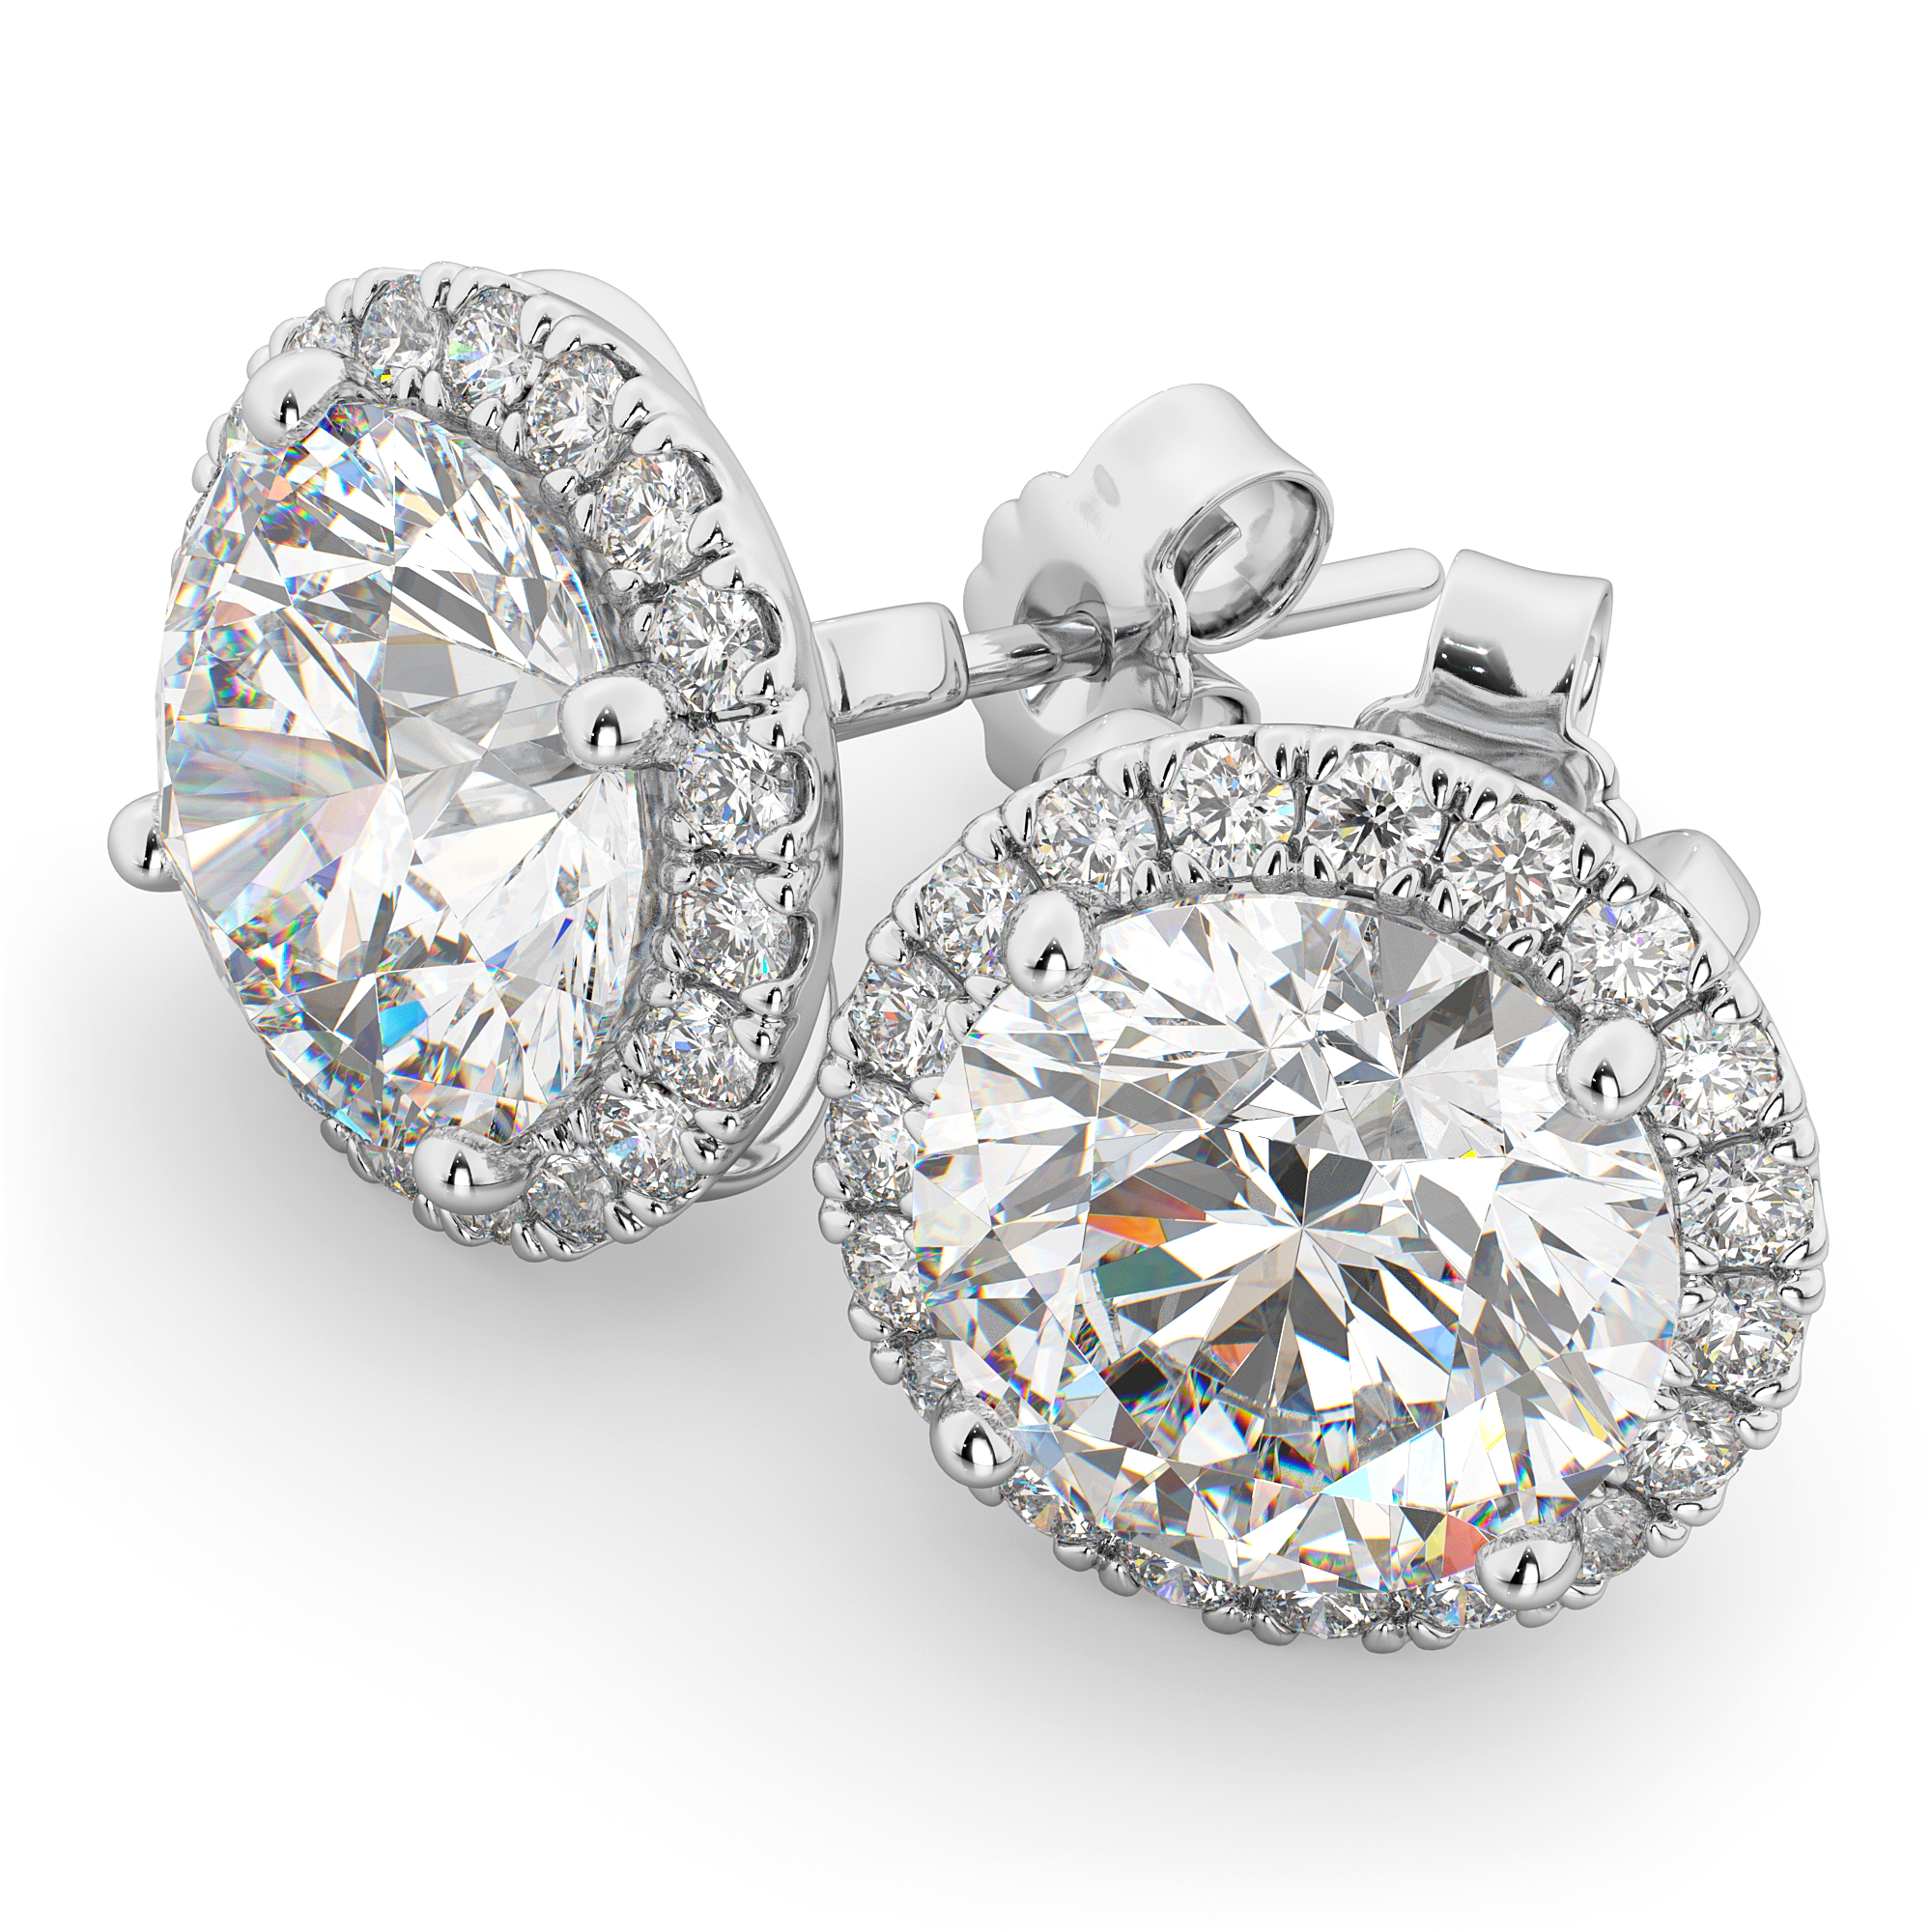 concept pictures scarlett wedding lovely engagement diamonds ideas princess of ring fresh moissanite oval earrings bride